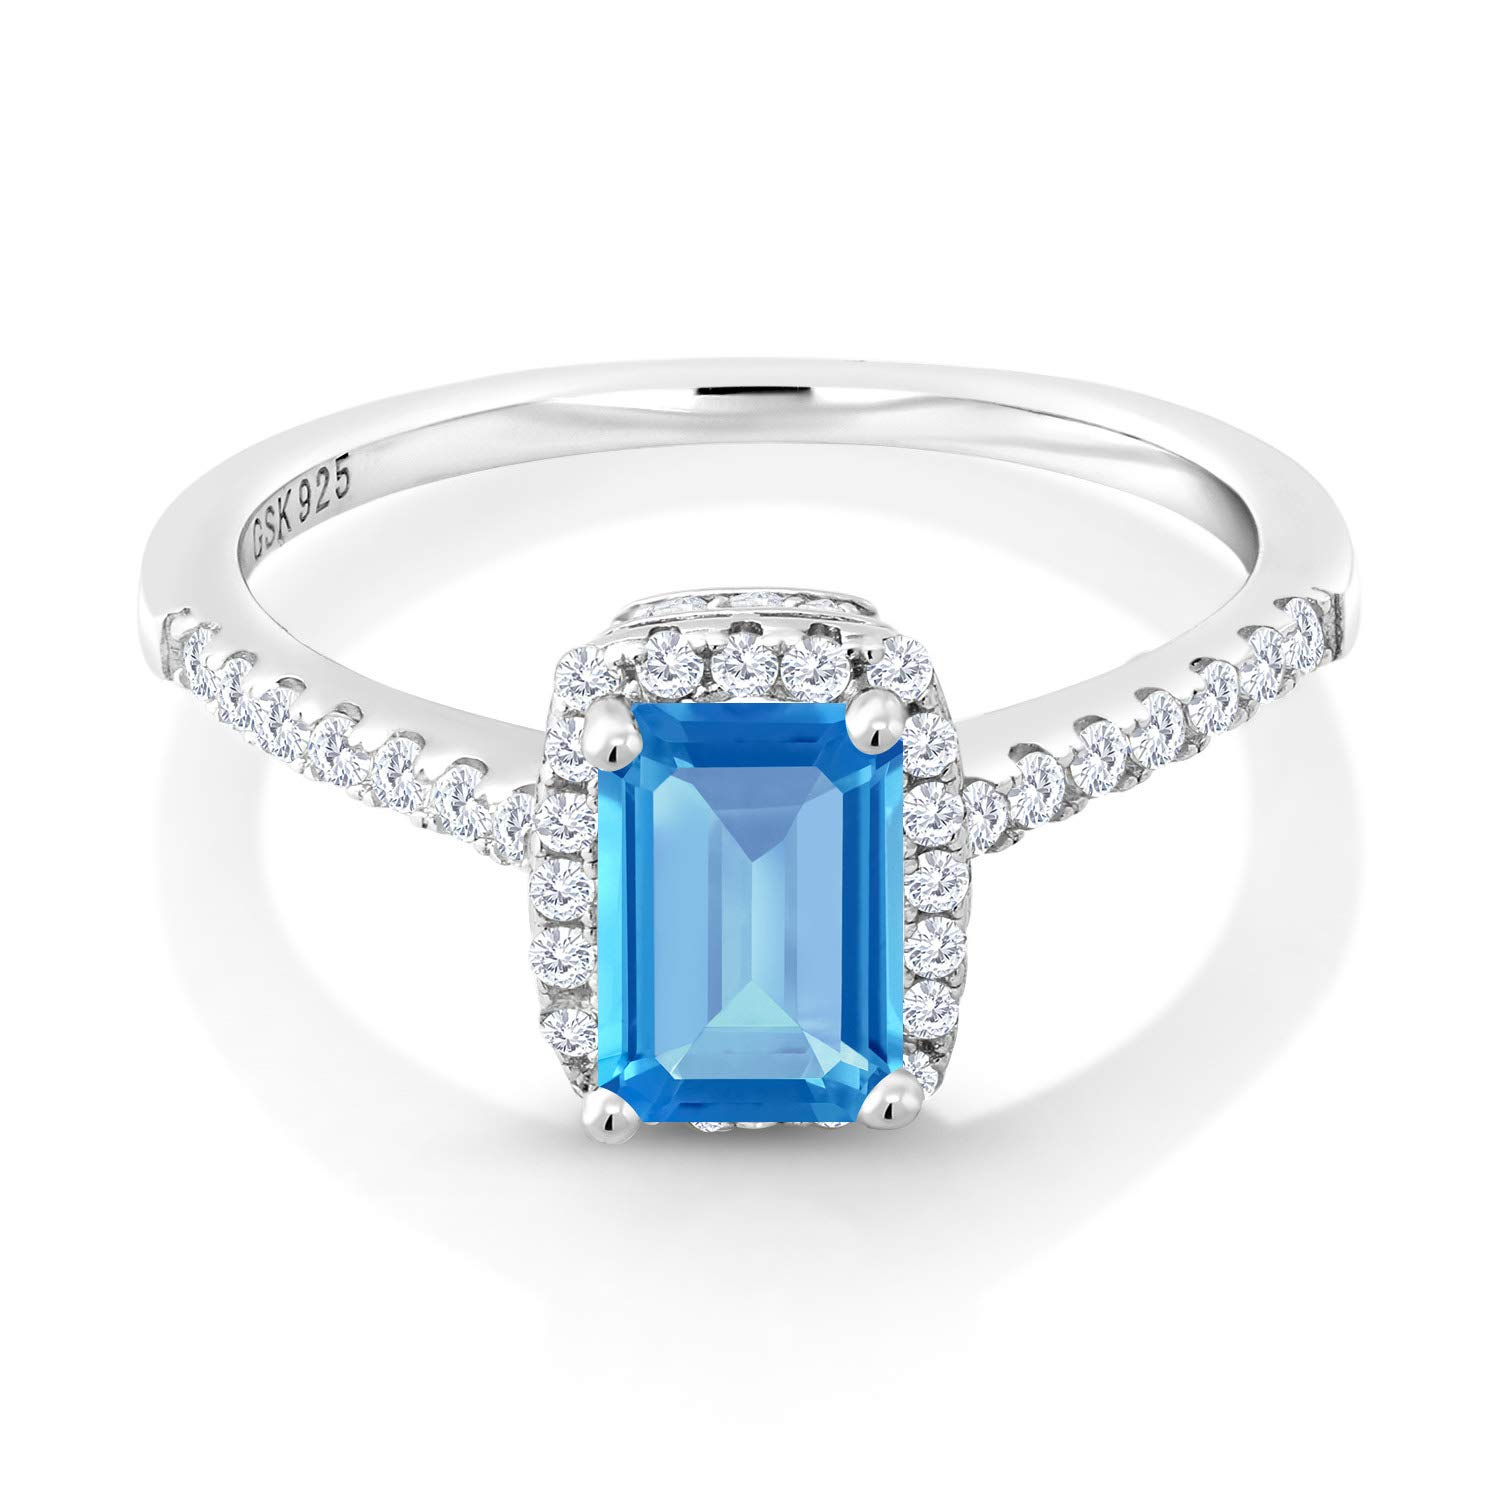 Gem Stone King 1.41 Ct Swiss Blue Topaz White Created Sapphire 925 Sterling Silver Ring